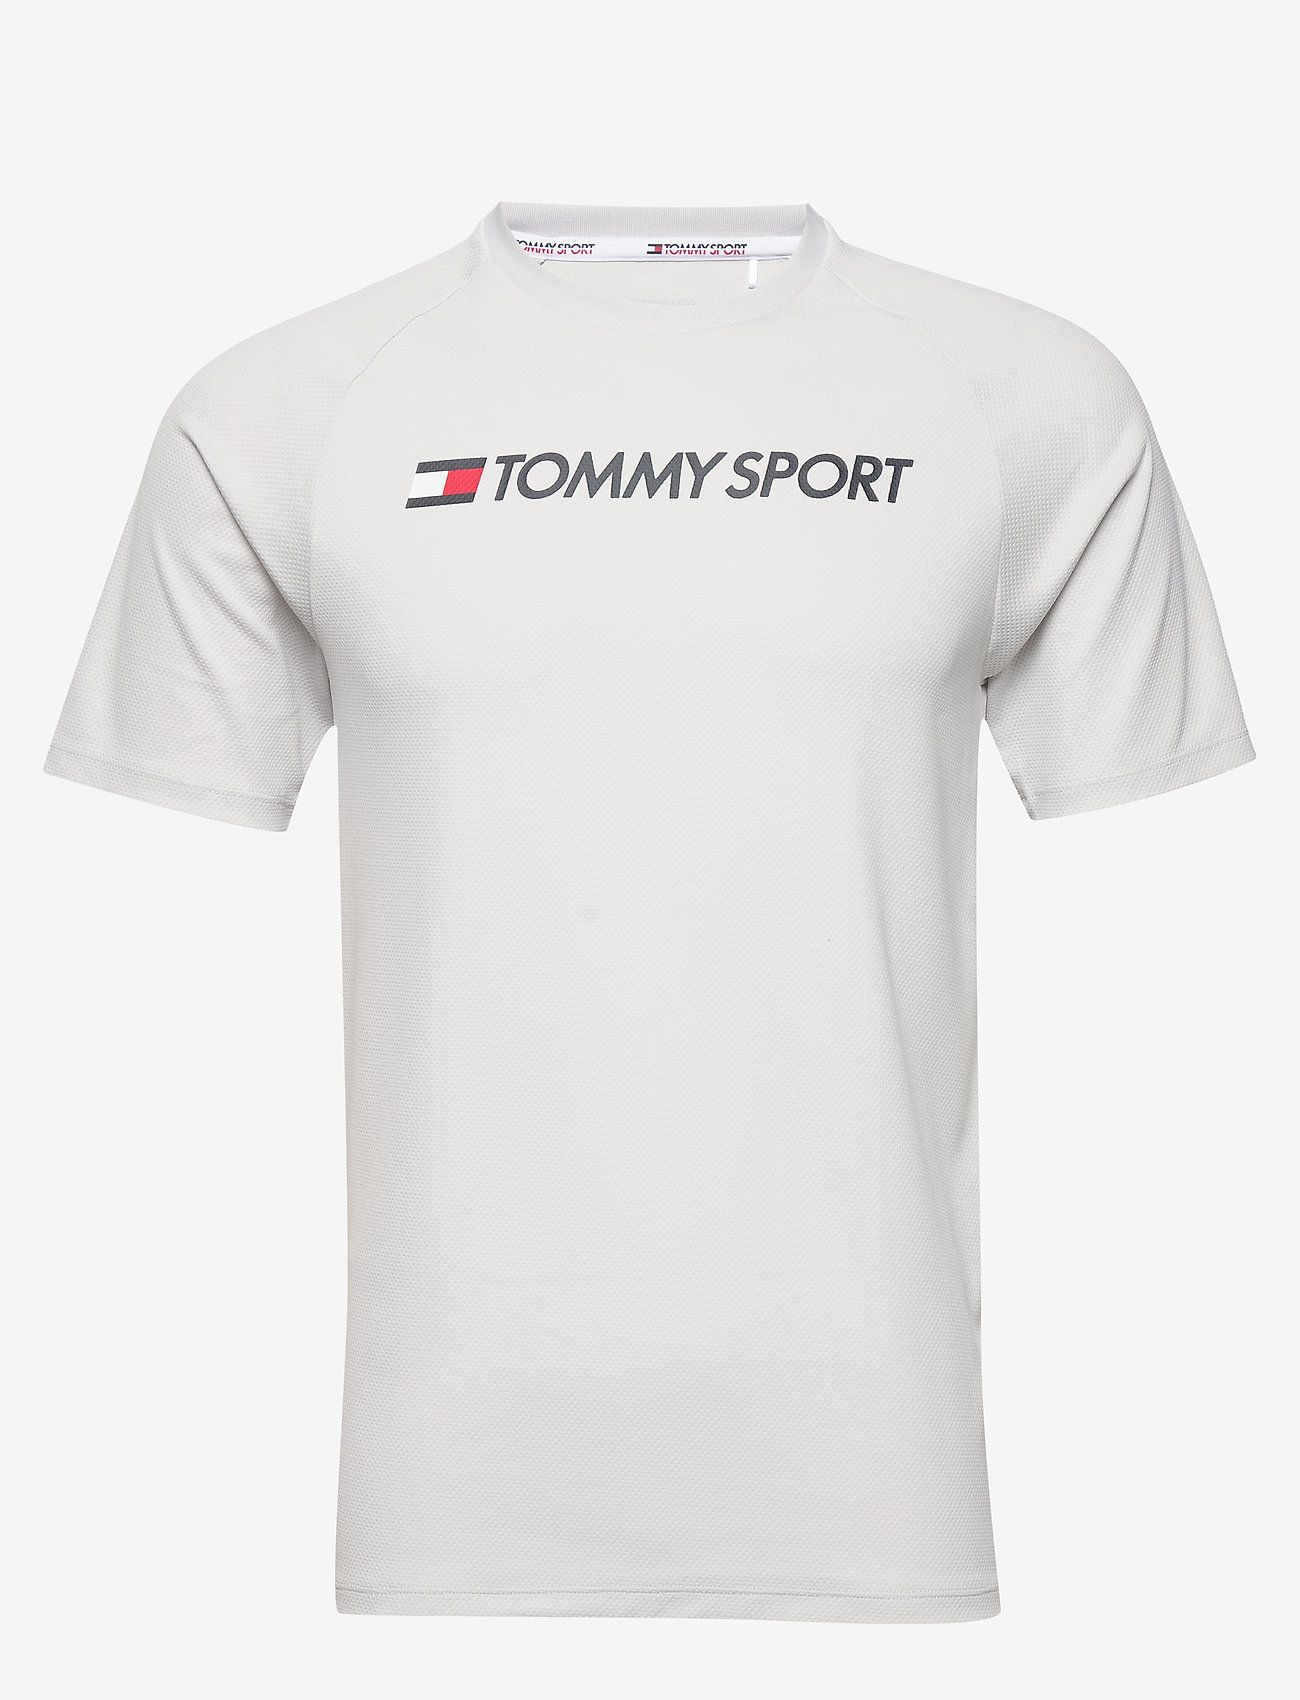 Tommy Sport - TRAINING TOP MESH LOGO - t-shirts - light cast - 0